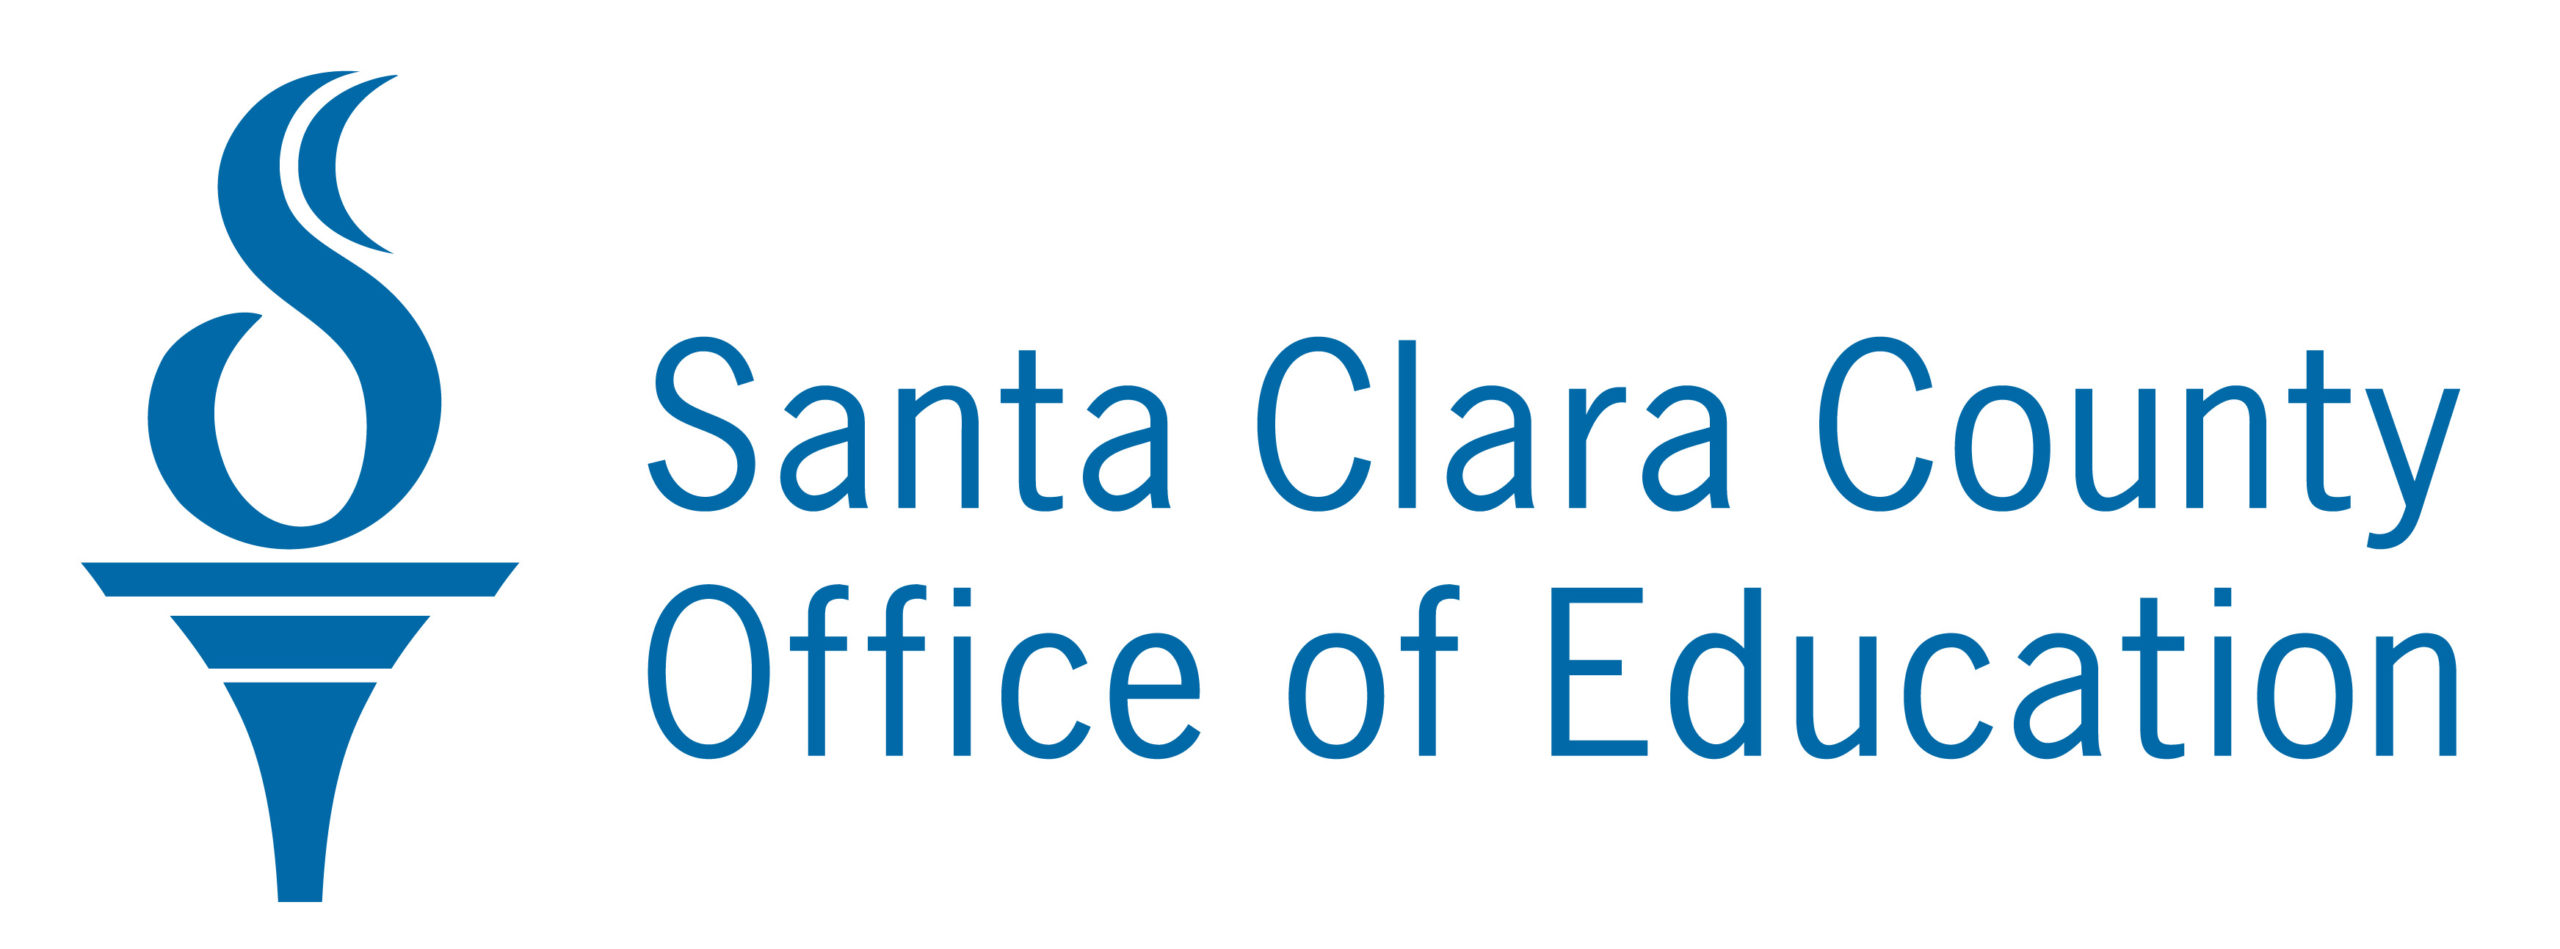 Santa Clara County Office of Education logo